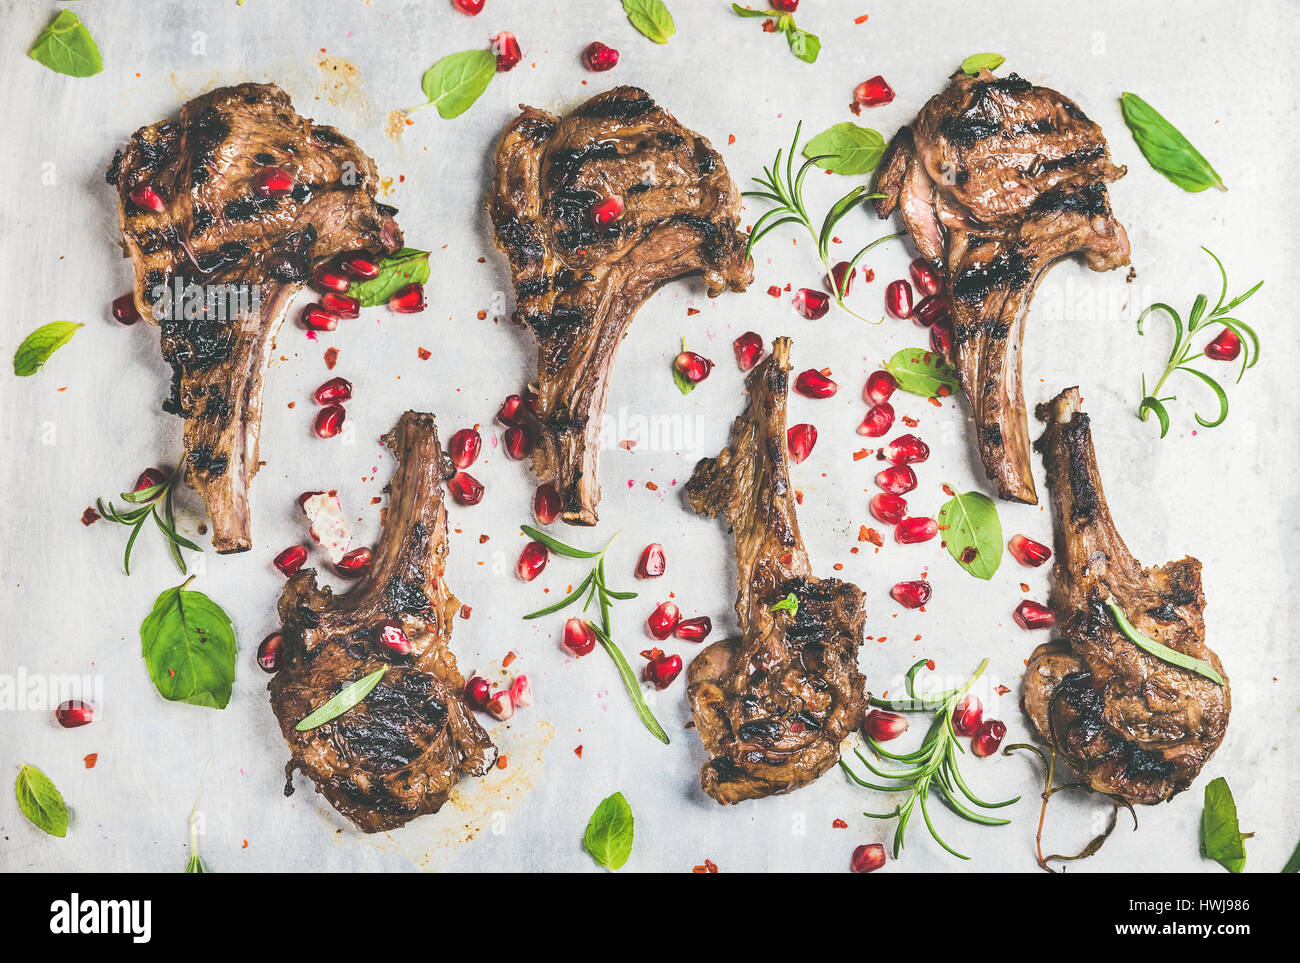 Grilled lamb ribs with pomegranate seeds, fresh mint and rosemary over metal baking tray background, top view, horizontal Stock Photo